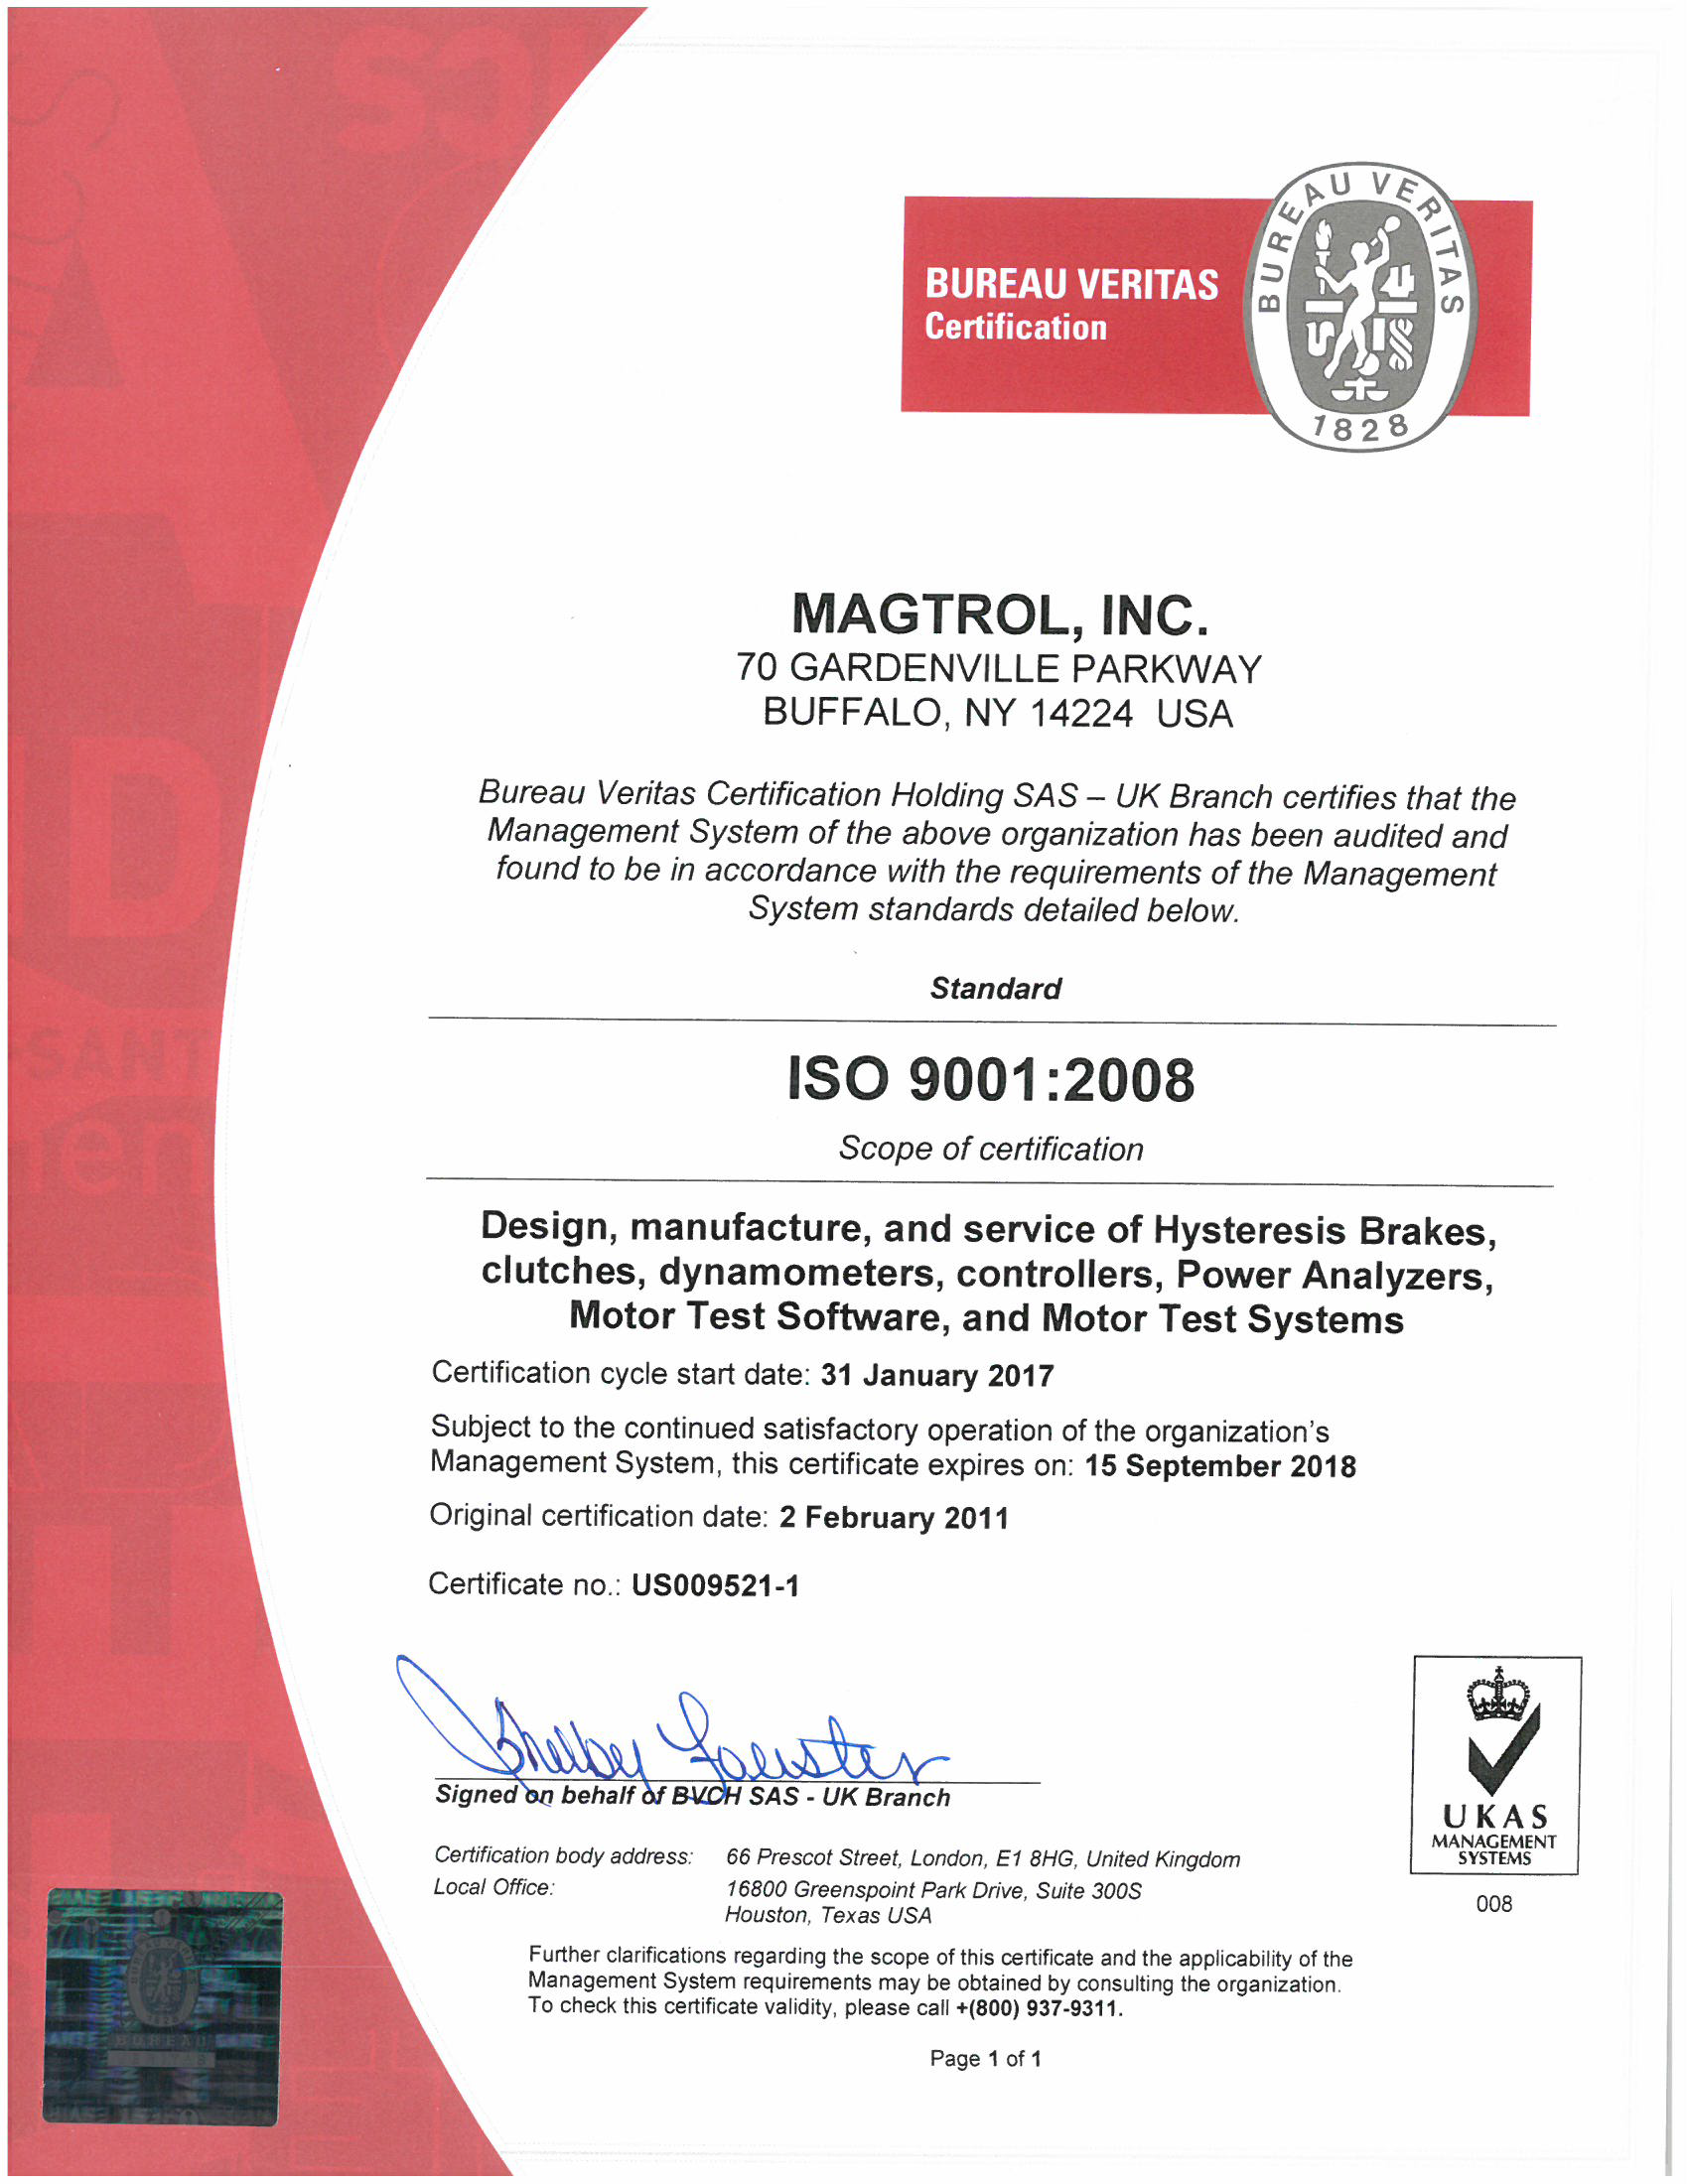 ISO 9001 and 14001 Certification